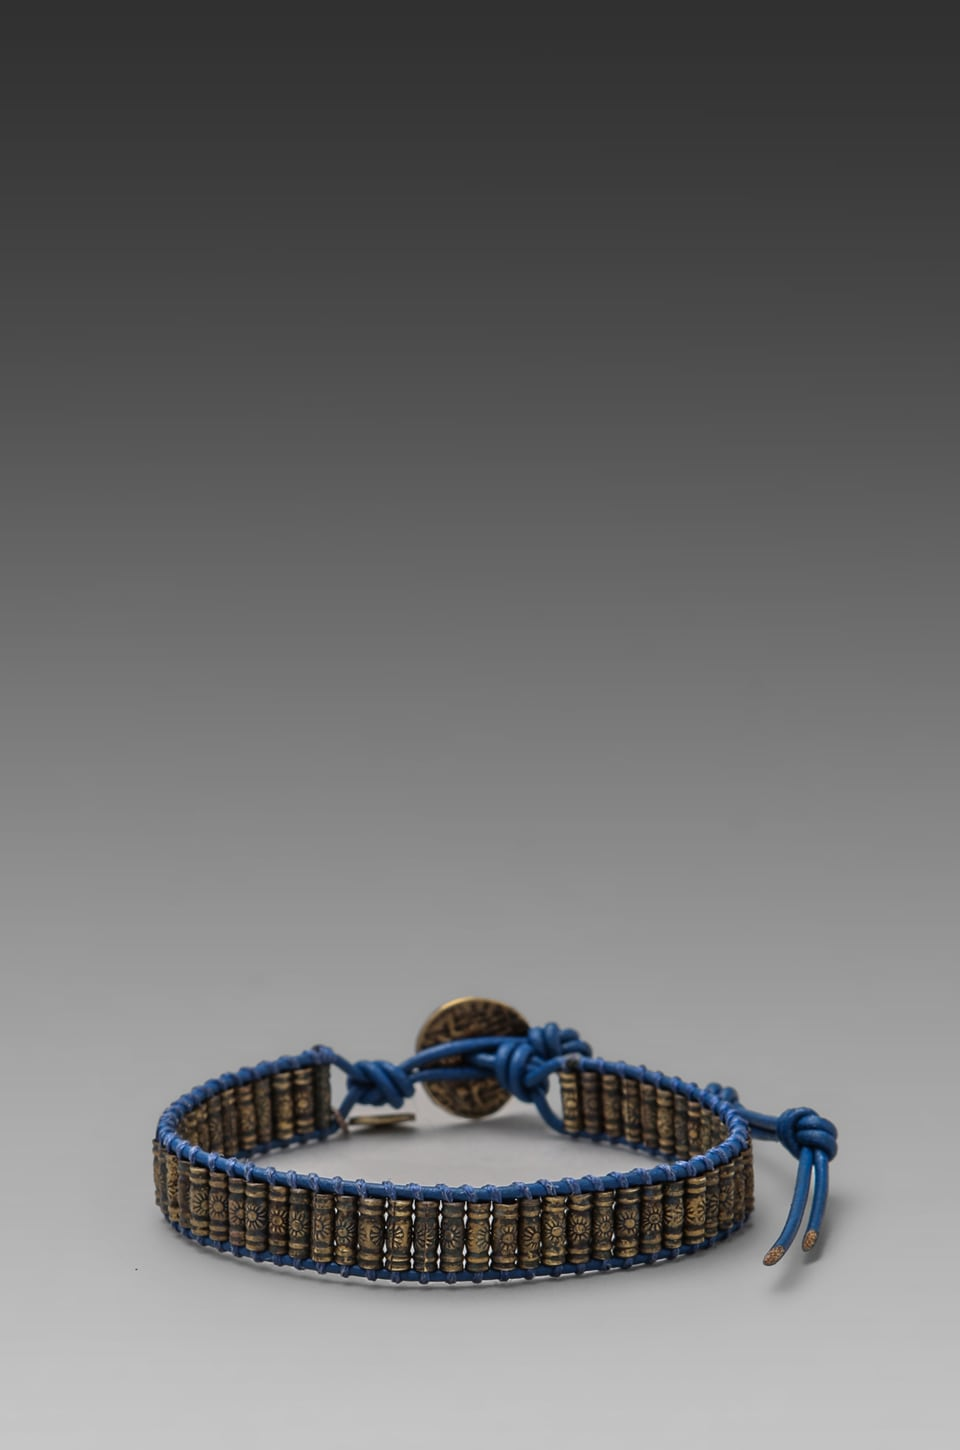 M.Cohen Oxidized Brass Stamped Beaded Bracelet in Blue